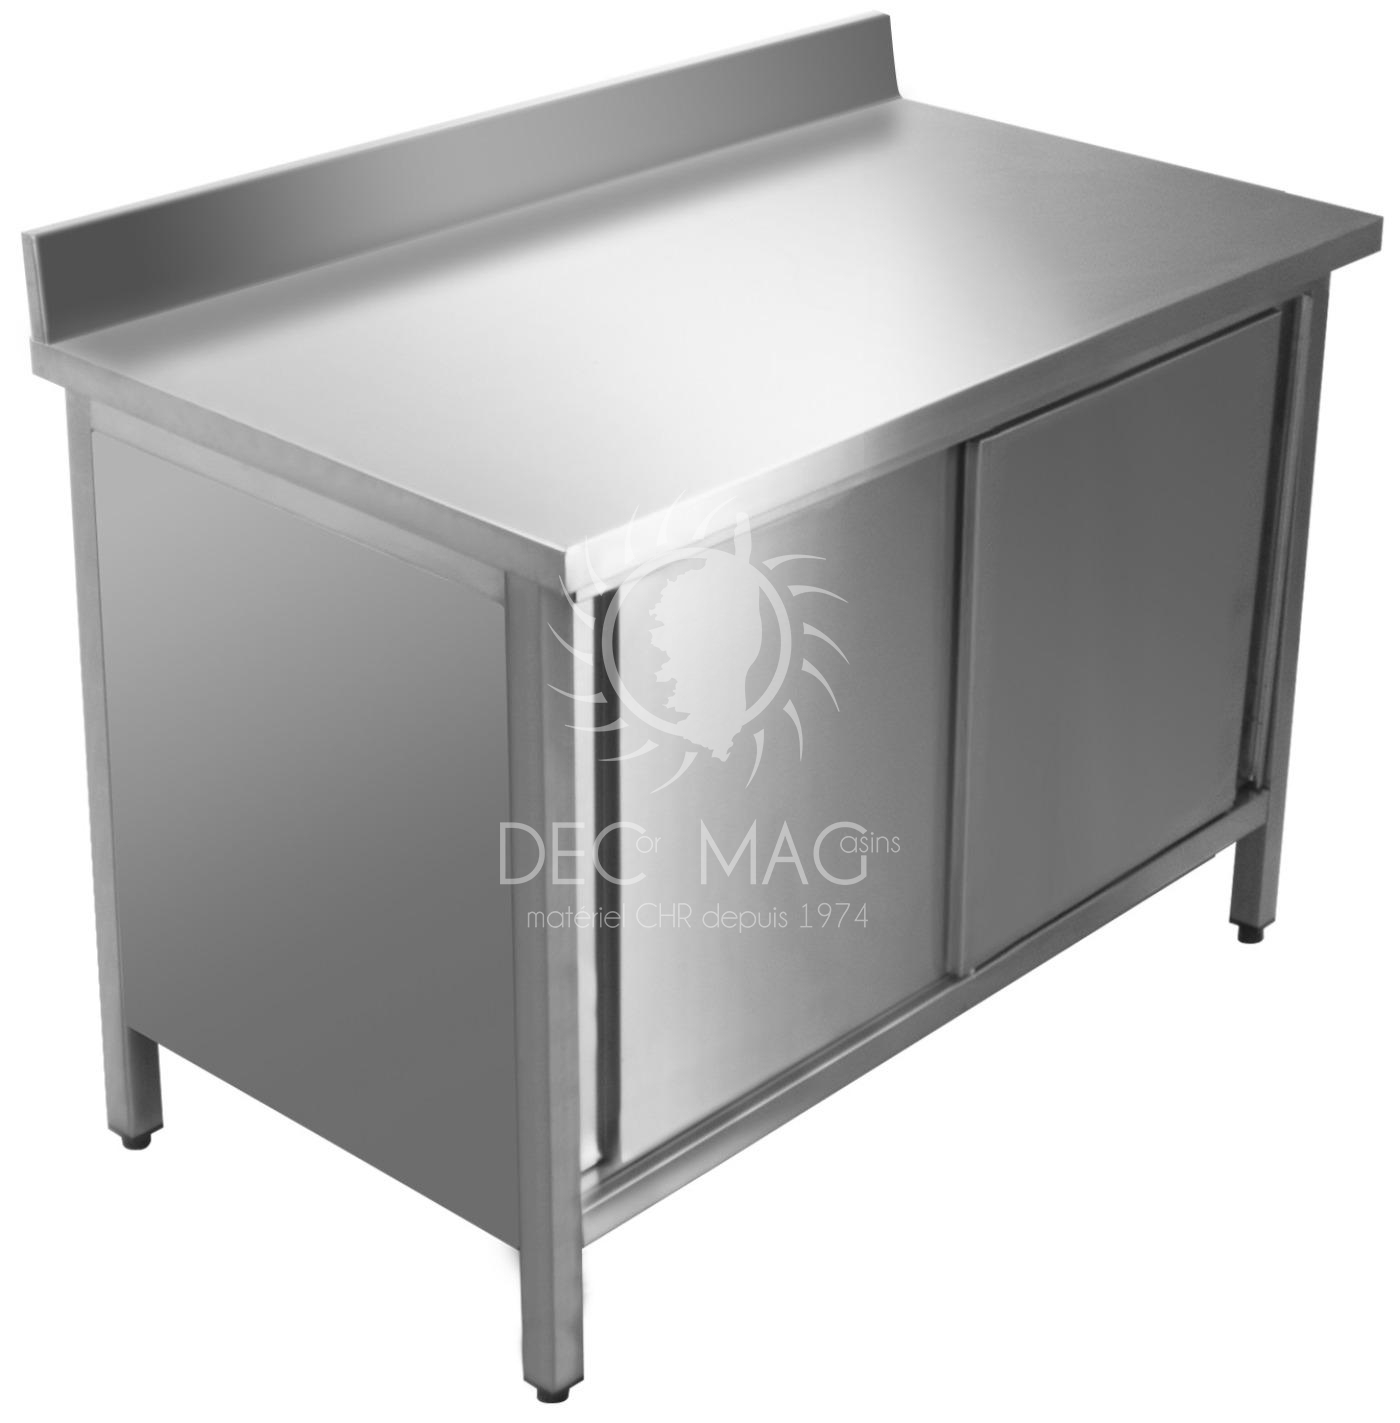 Decor magasin vente table armoire inox adoss e 1200x700 for Table armoire inox